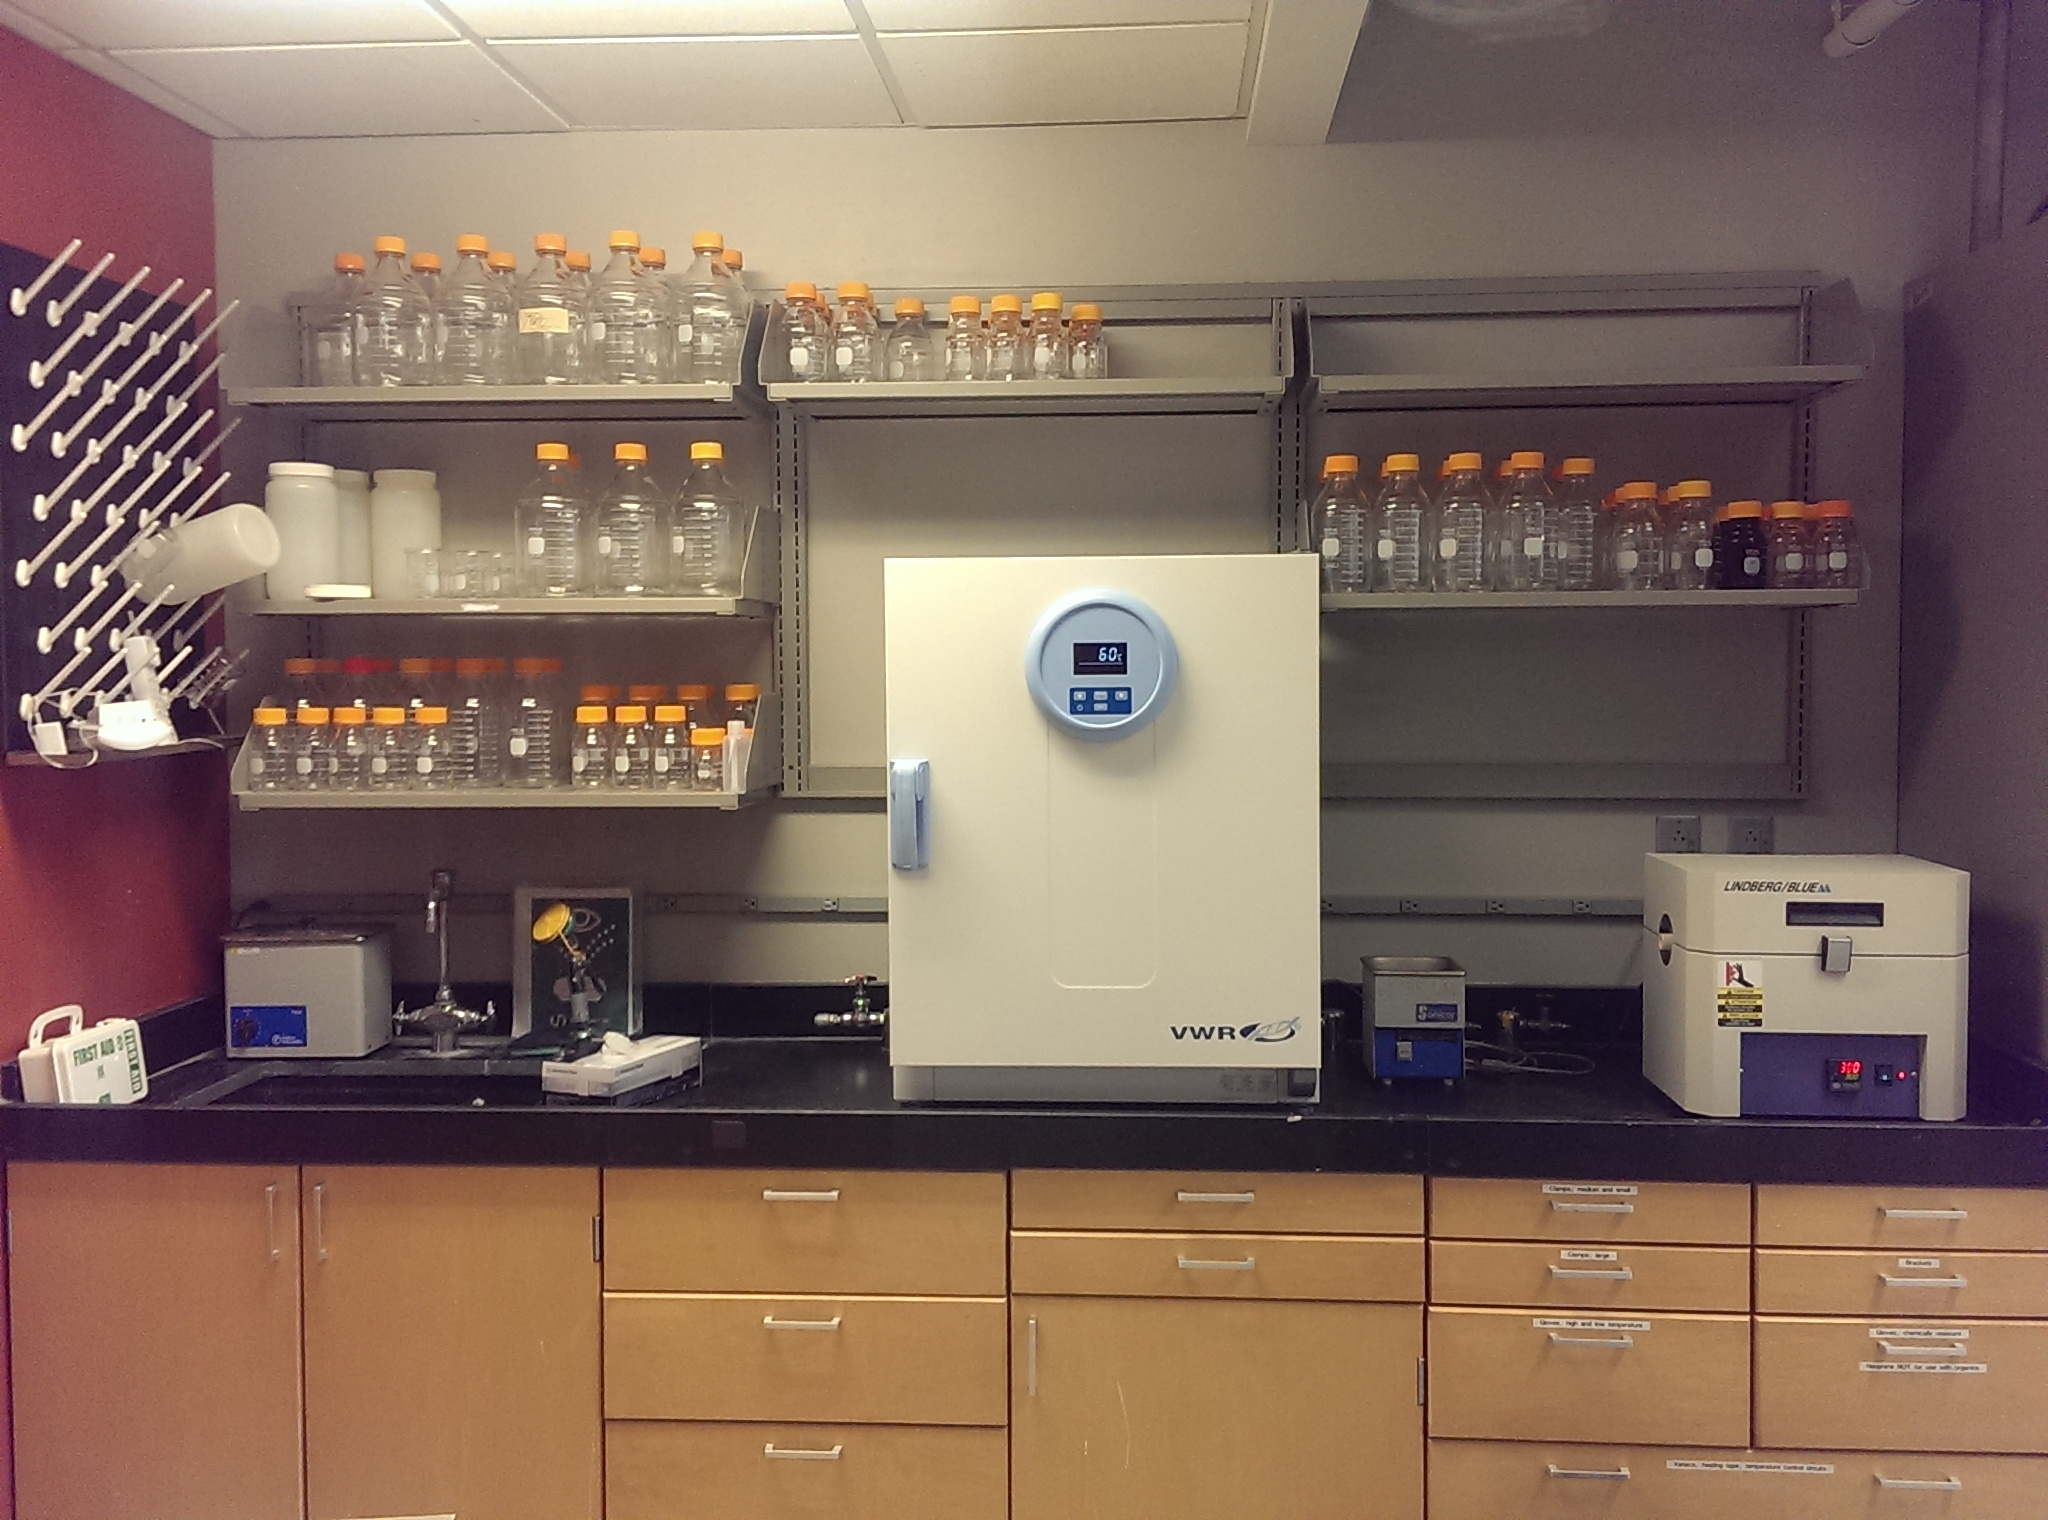 Our only lab bench so far (others are coming in September) with low- and high-temperature ovens in place.